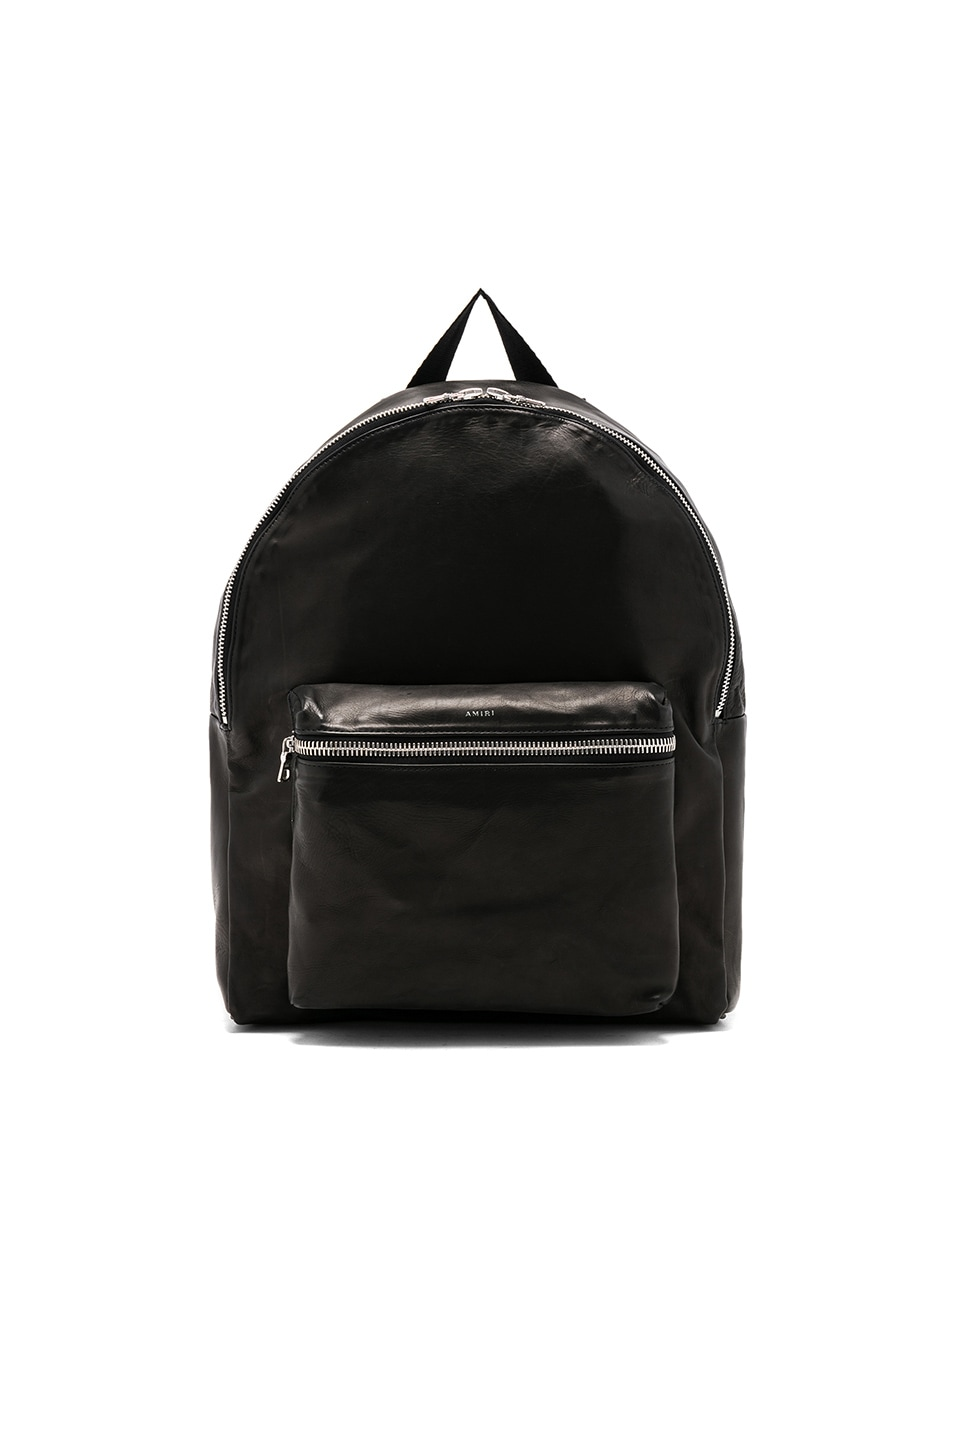 Leather Backpack - Black Amiri Discount Eastbay Genuine Cheap Price Fake Cheap Professional Fashionable KEOW9A3